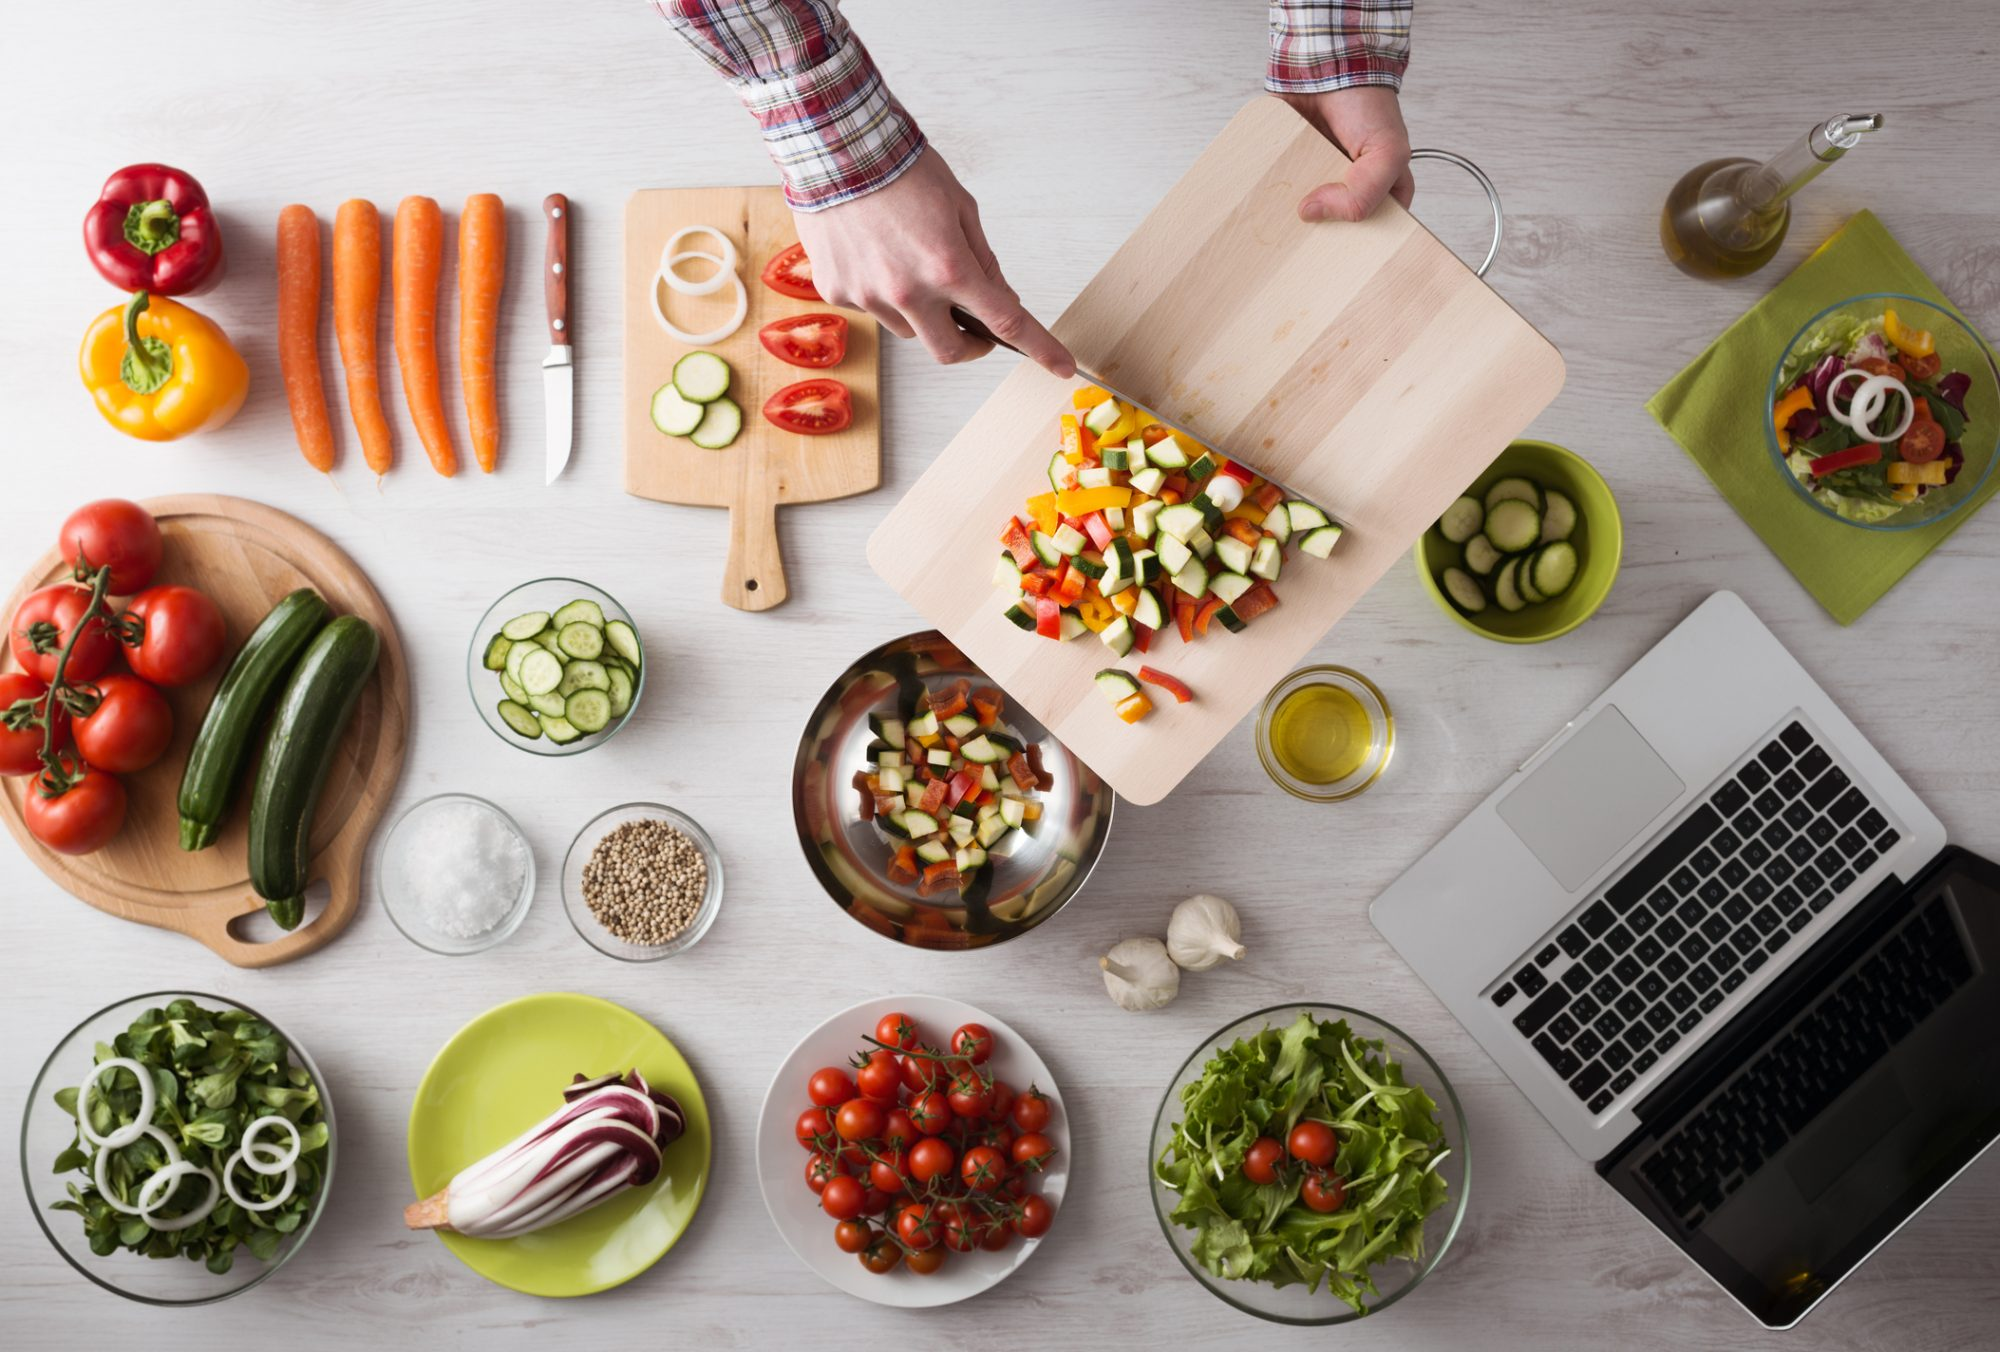 <p>Man's hands cooking at home and chopping fresh vegetables on a cutting board, kitchen tools and food ingredients all around, top view</p>